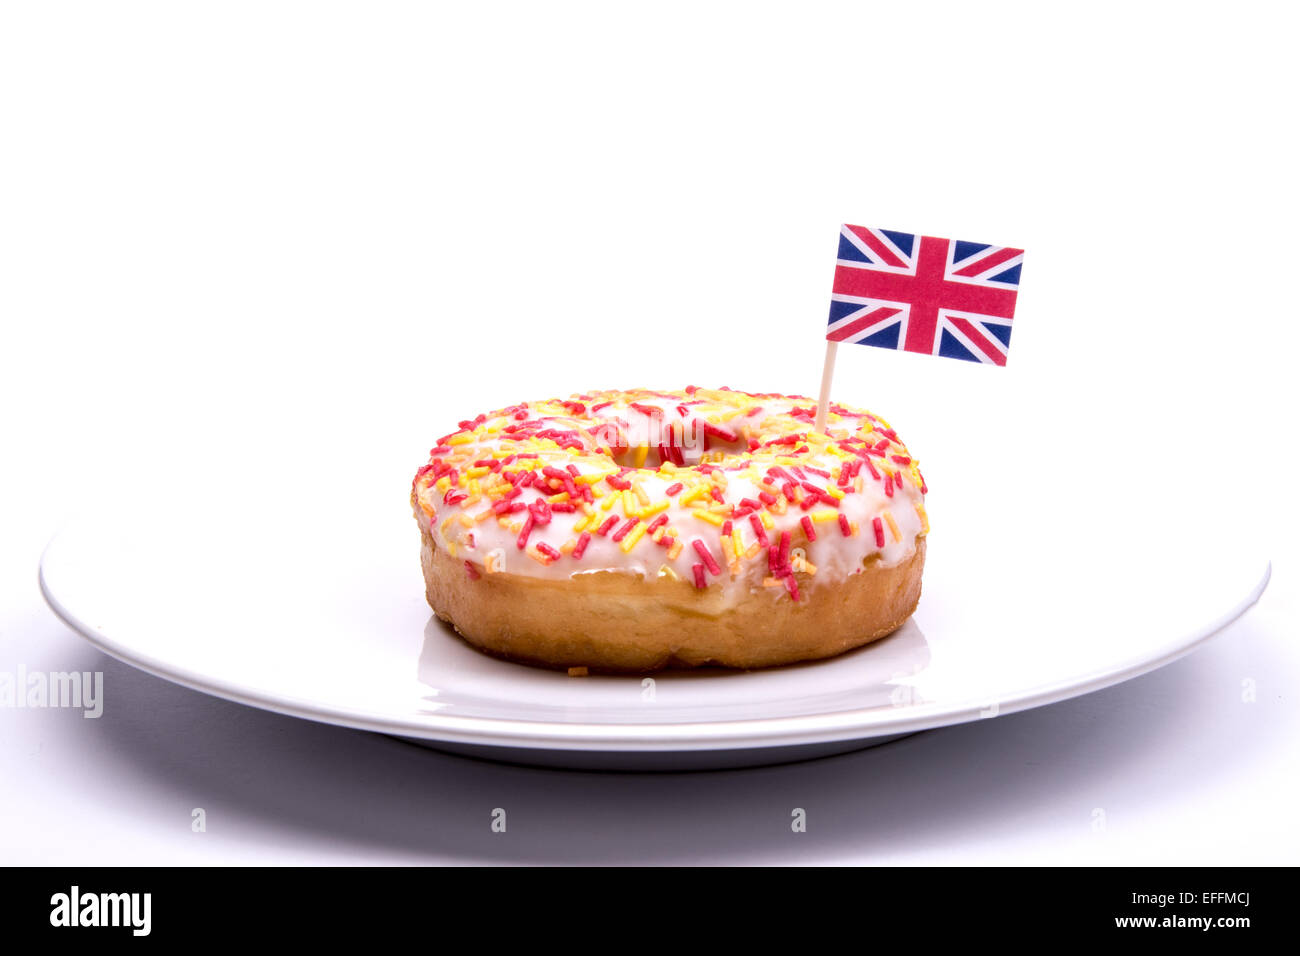 Iced ring donut on a plate with a British Union Jack flag against a white background - Stock Image